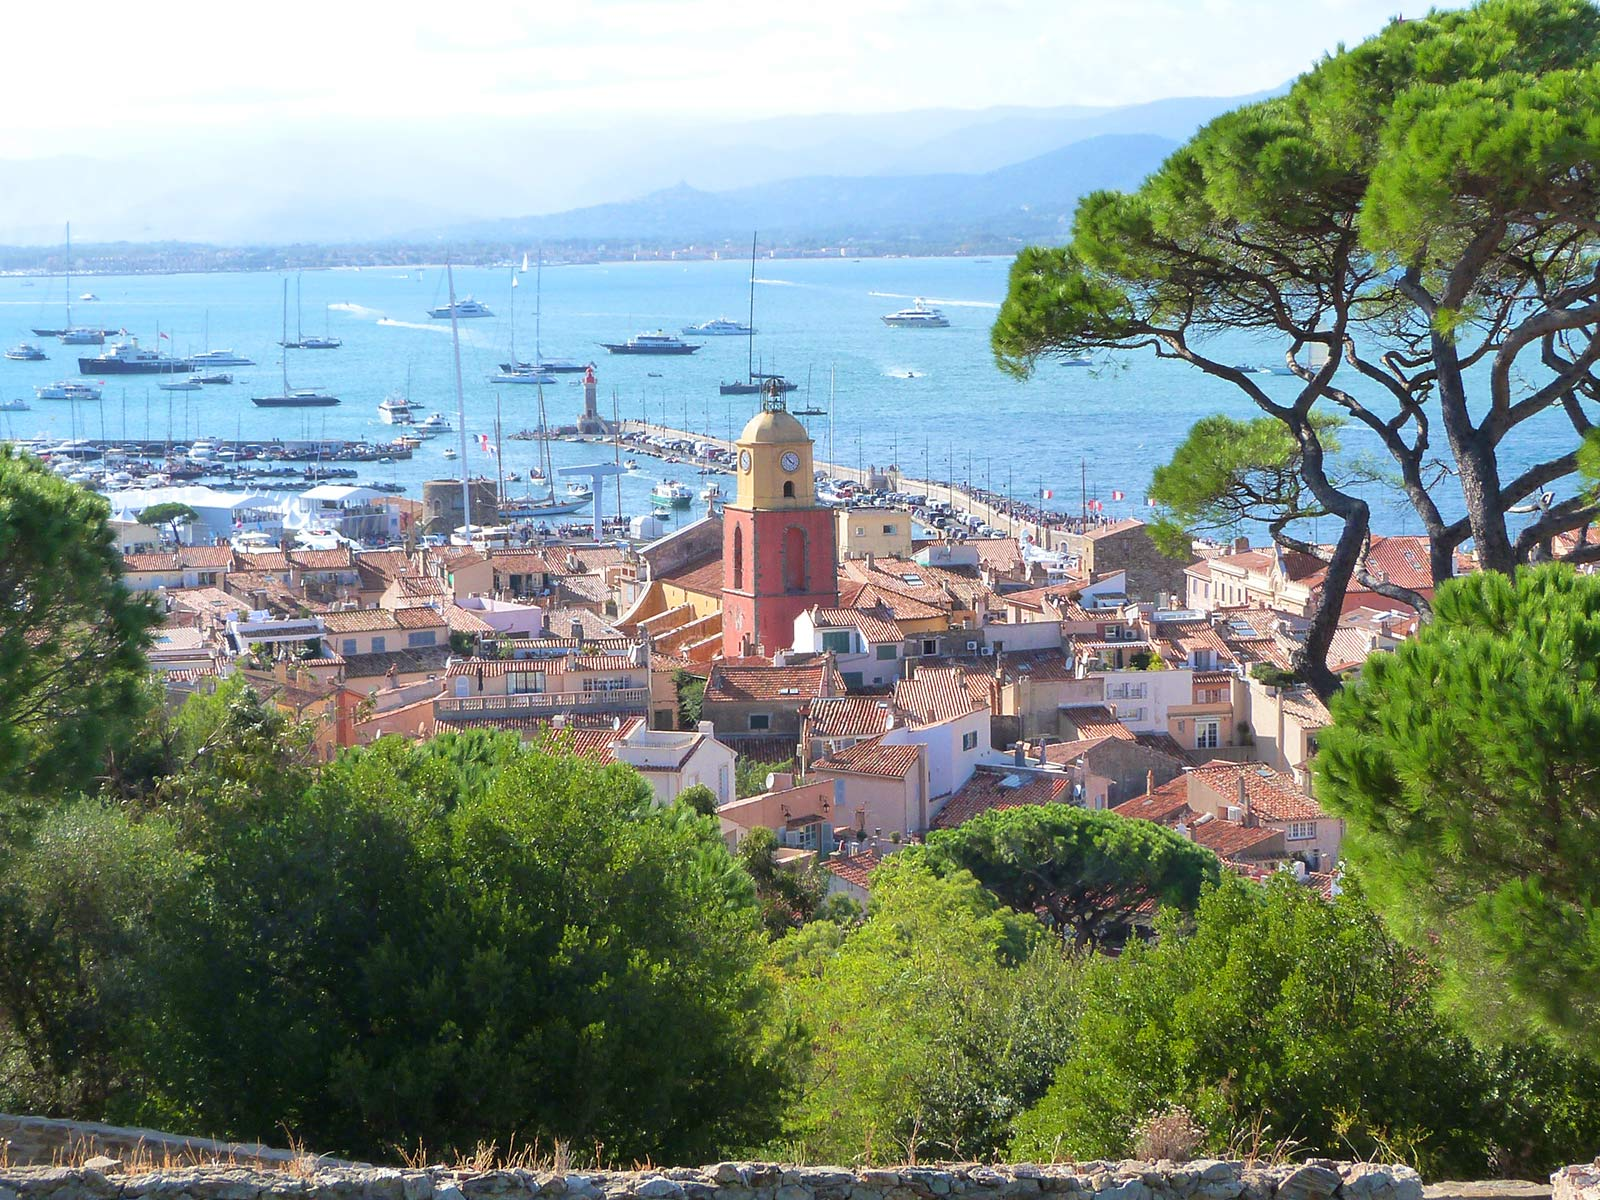 During Your Camping Holiday Come And Experience The Saint Tropez